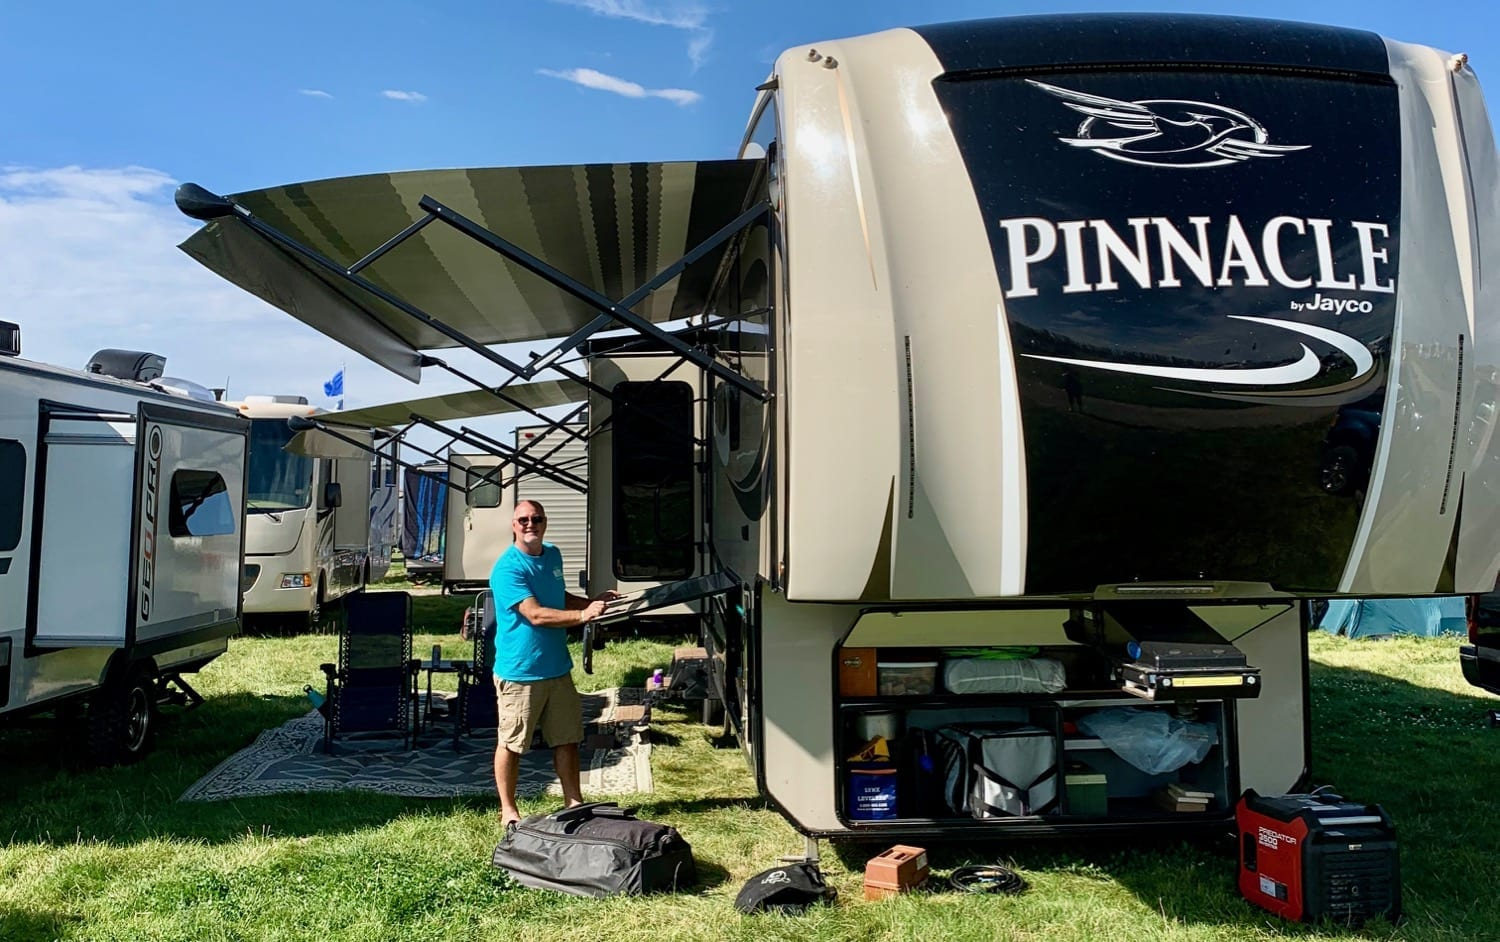 RV parked on grass with many other RVs. Man opening basement compartment under RV awning.